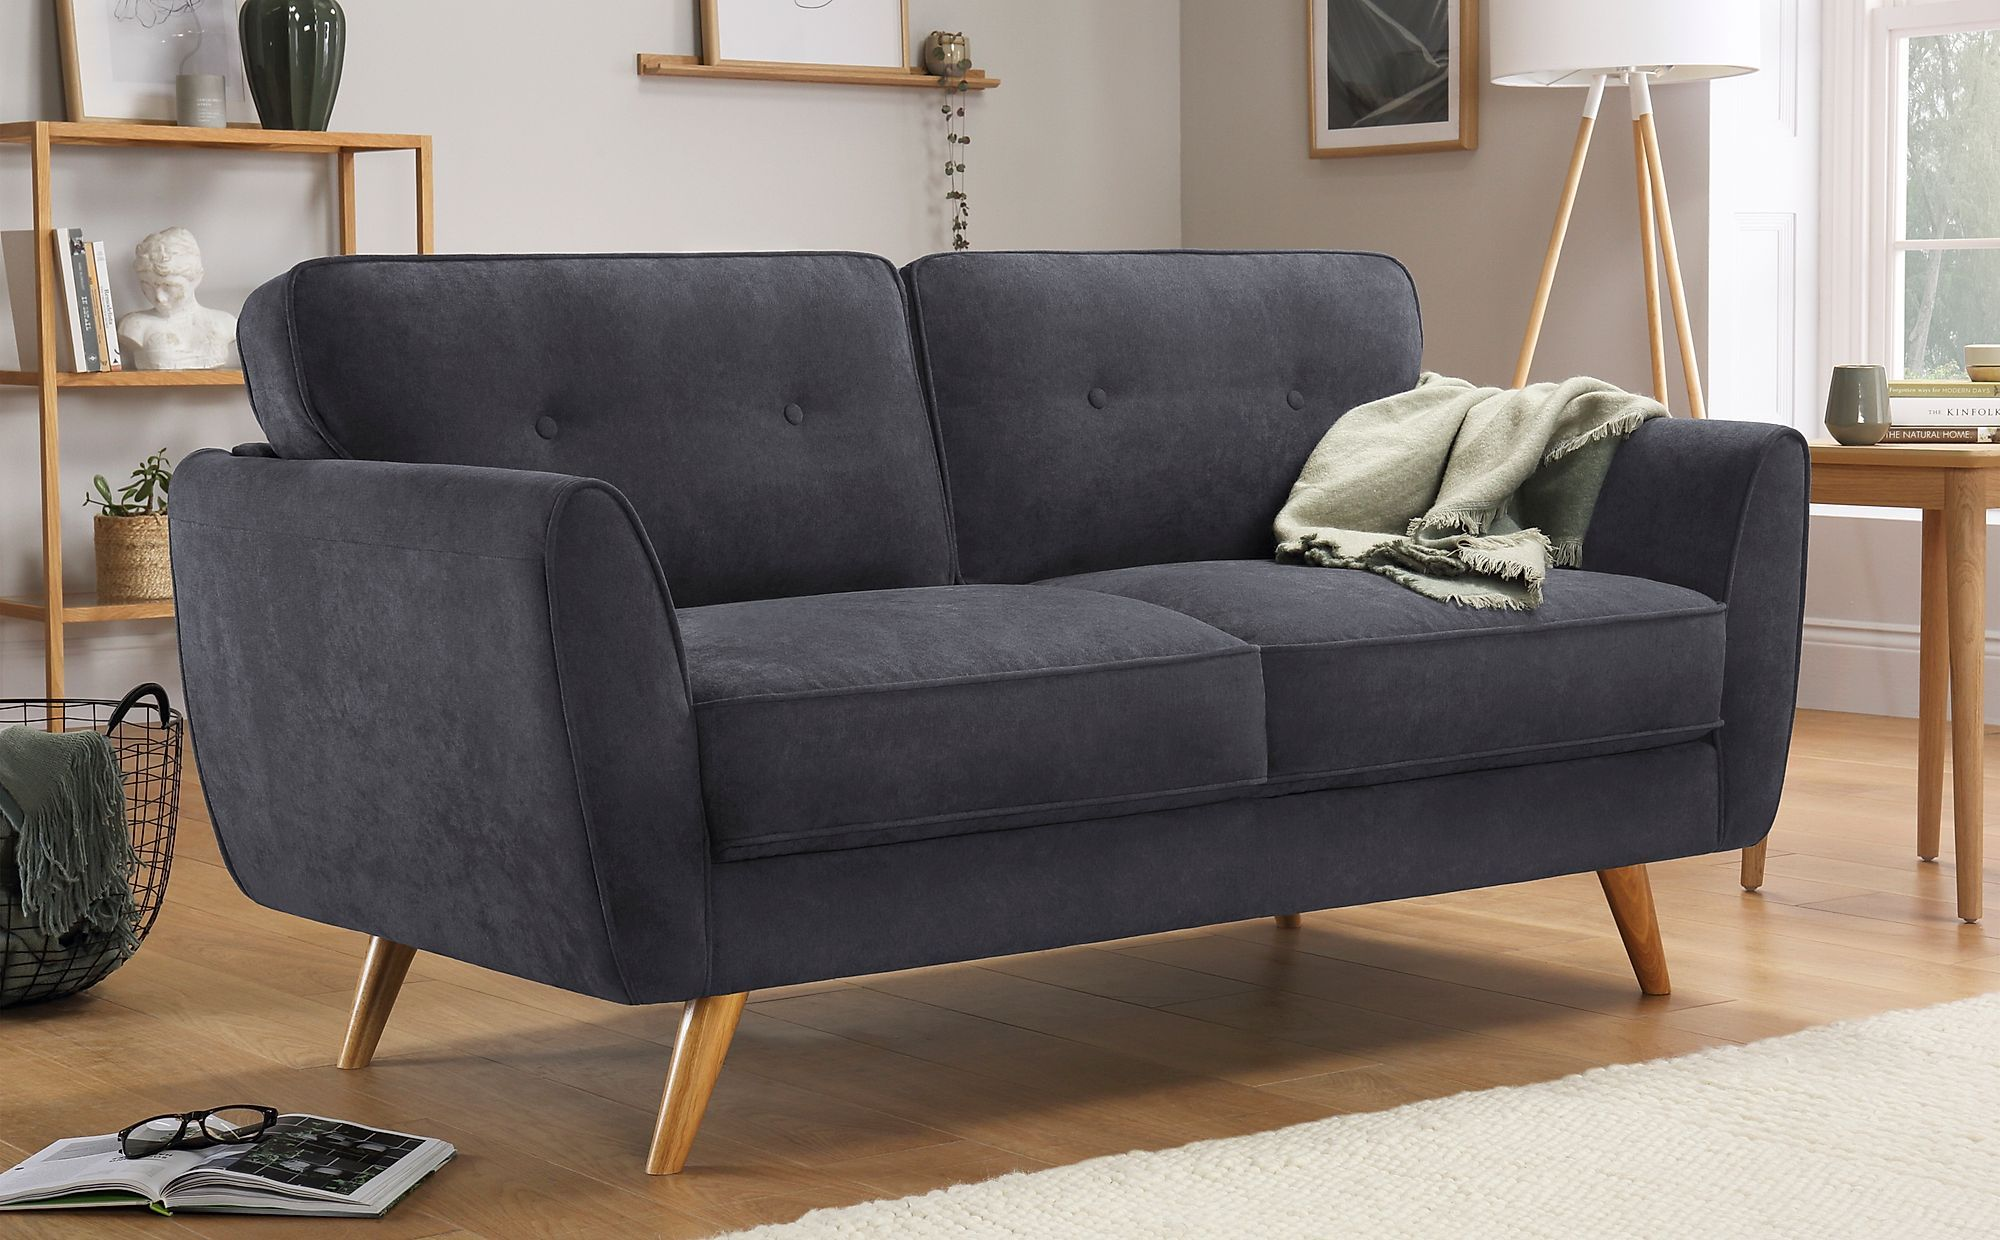 Harlow Slate Grey Plush Fabric 2 Seater Sofa Furniture Choice In 2020 Furniture Choice Seater Sofa Fabric Sofa